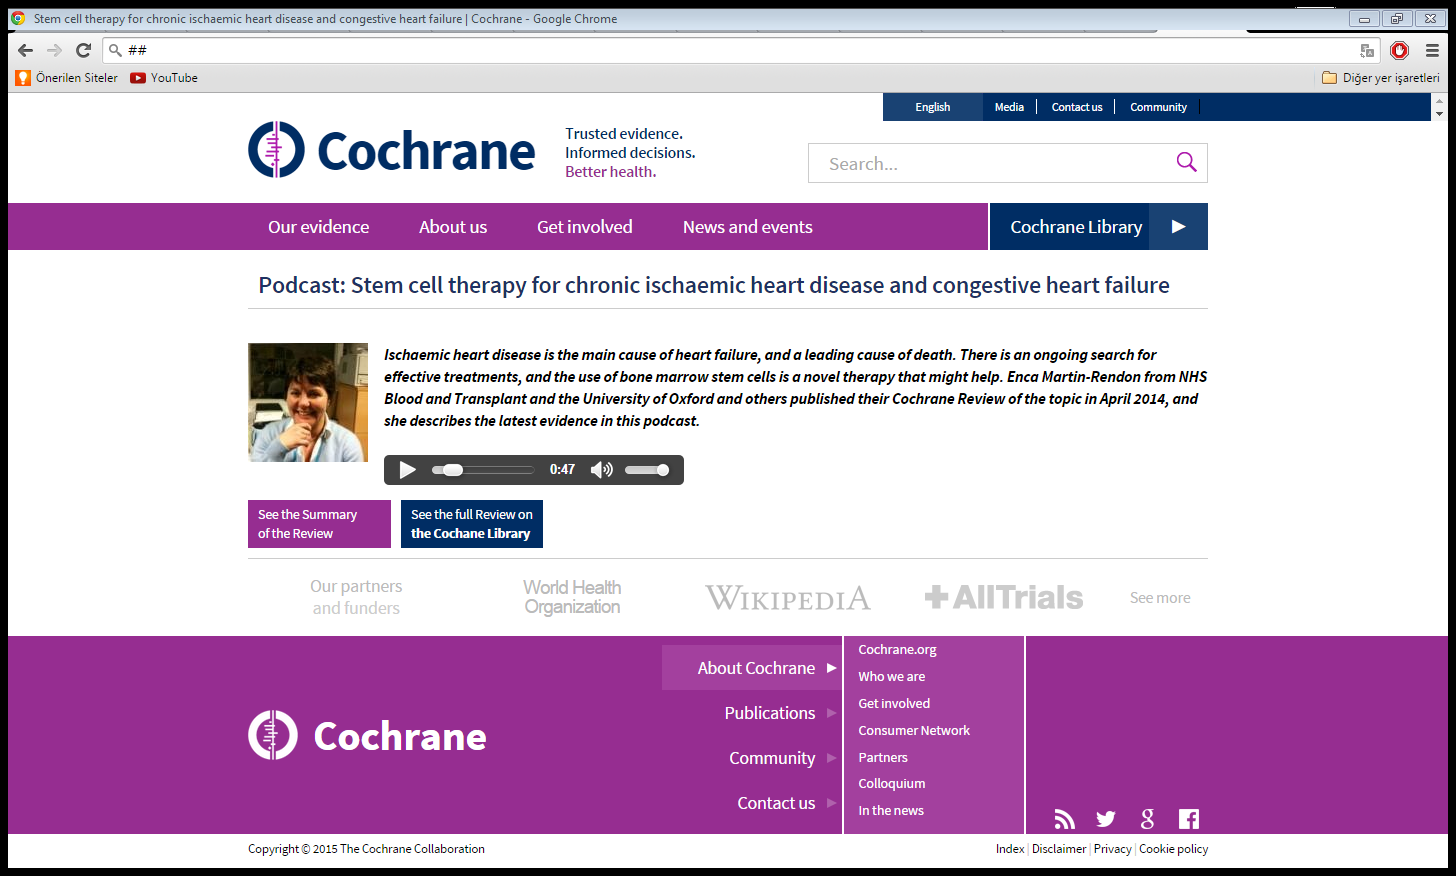 Podcast http://www.cochrane.org/podcasts/10.1002/14651858.cd007888.